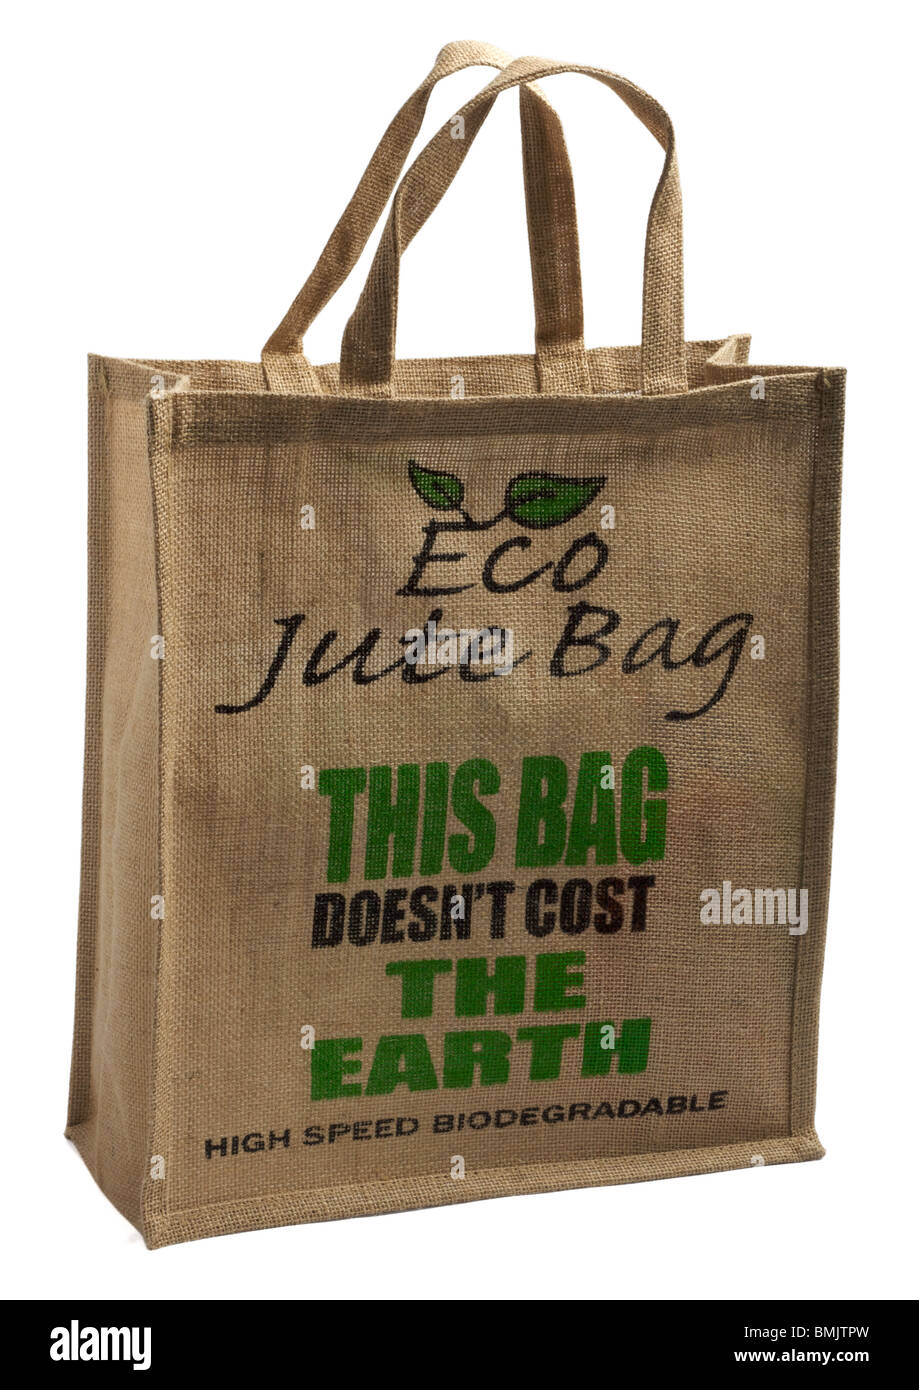 Jute recyclable reusable carrier bag on white background - Stock Image